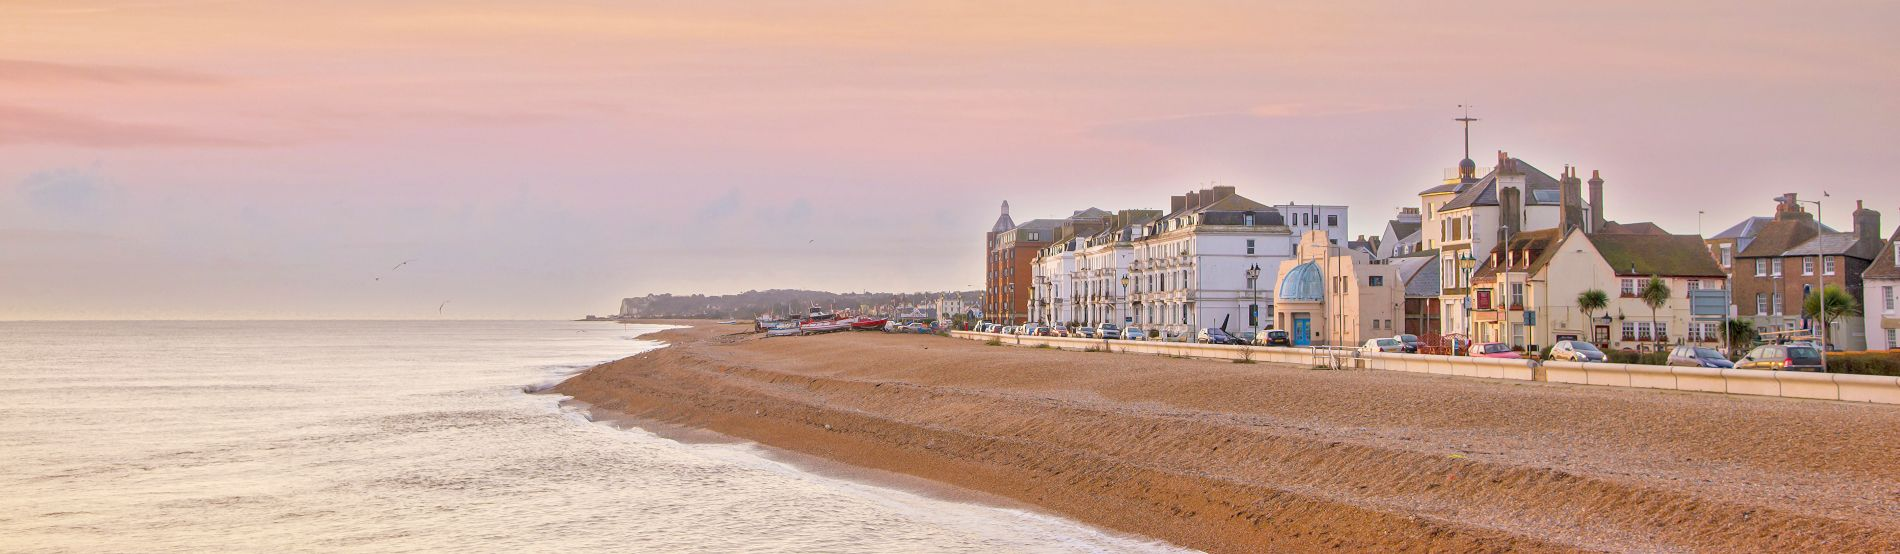 View of Deal beach front and town from the pier